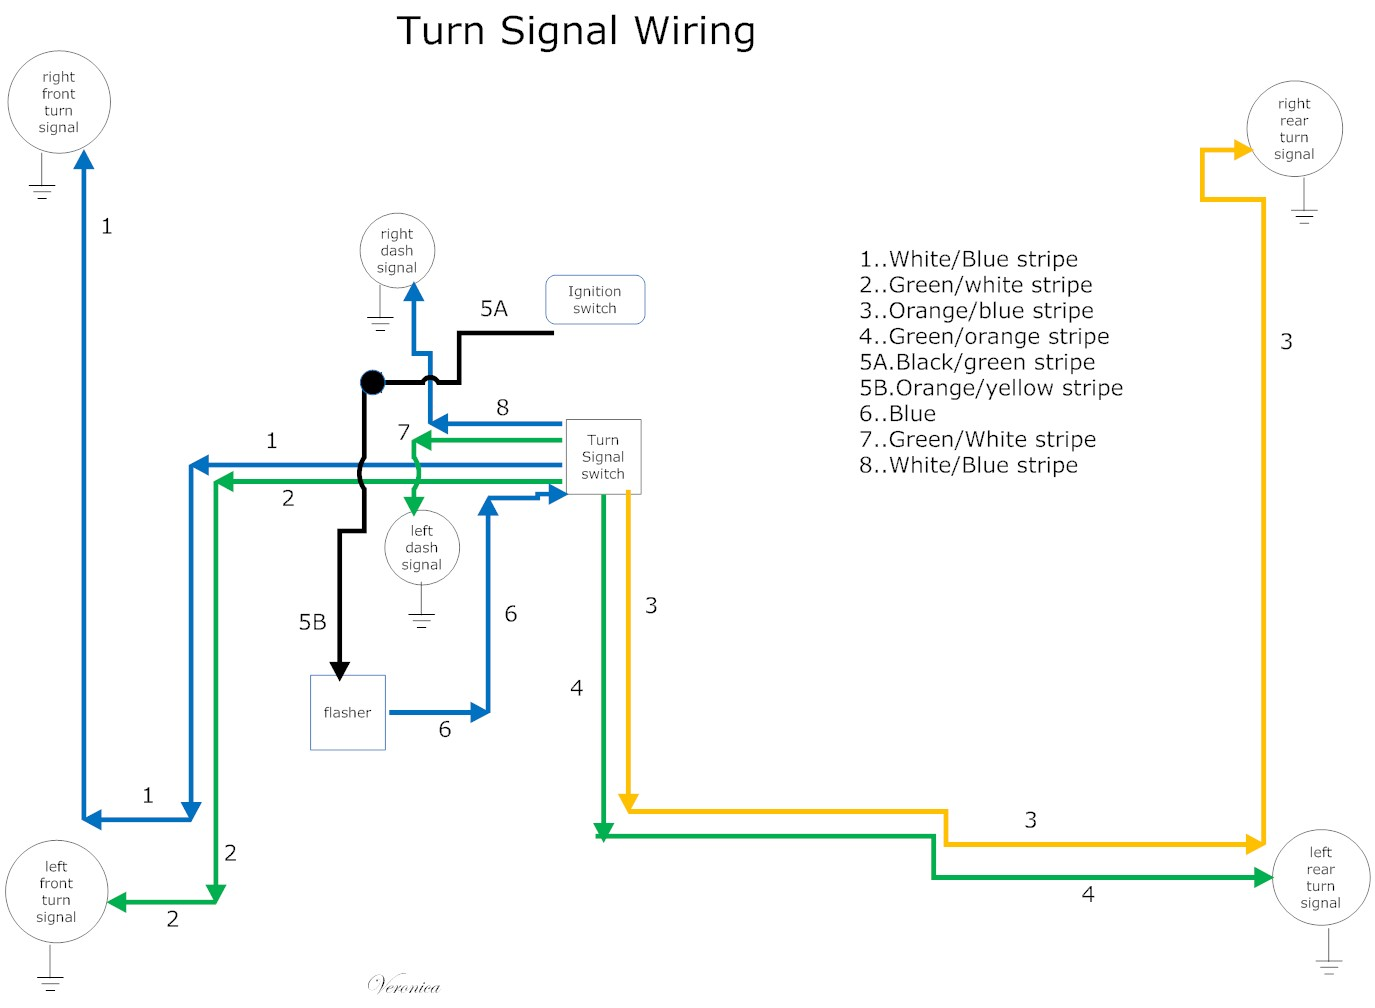 wiring diagram turn signal flasher the wiring diagram the care and feeding of ponies 1965 1966 mustang turn signal wiring diagram